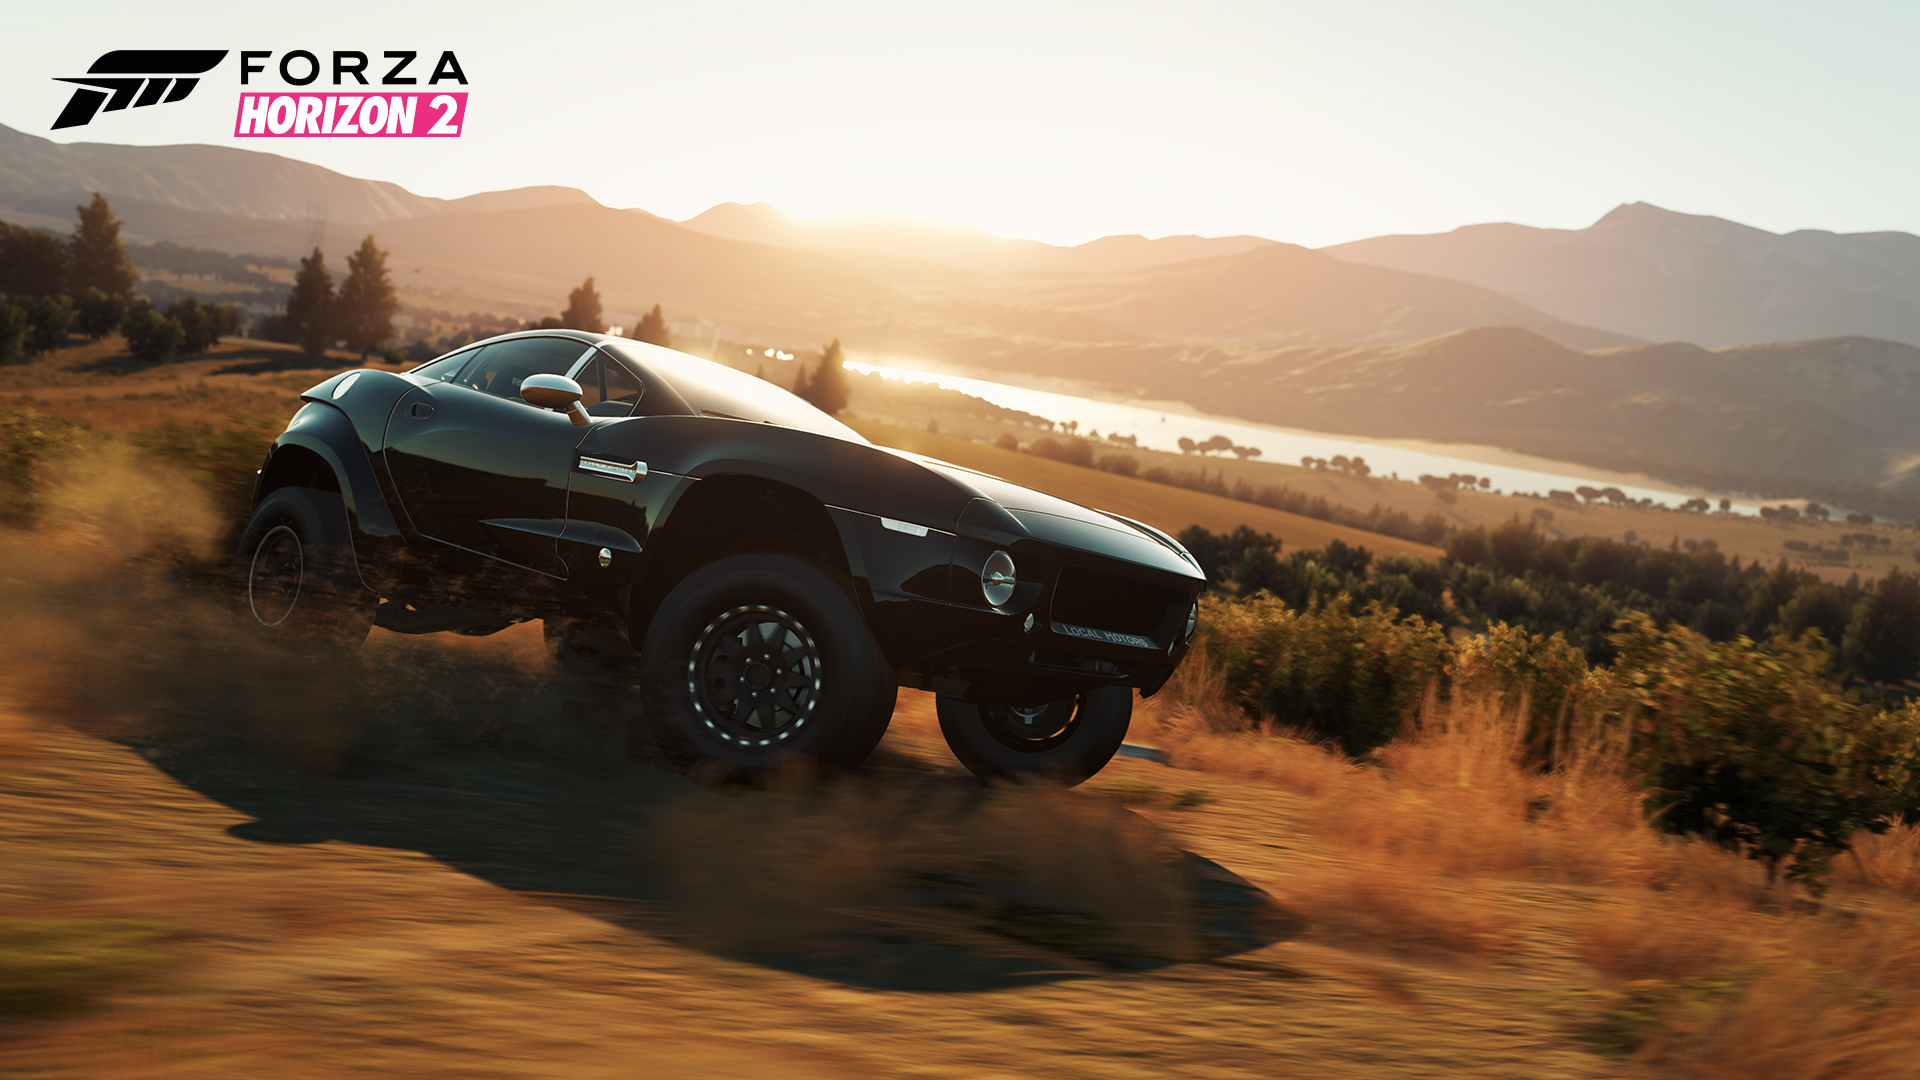 Xbox-Exclusive Forza Horizon 2 Goes Gold, Xbox One Gets Demo Today